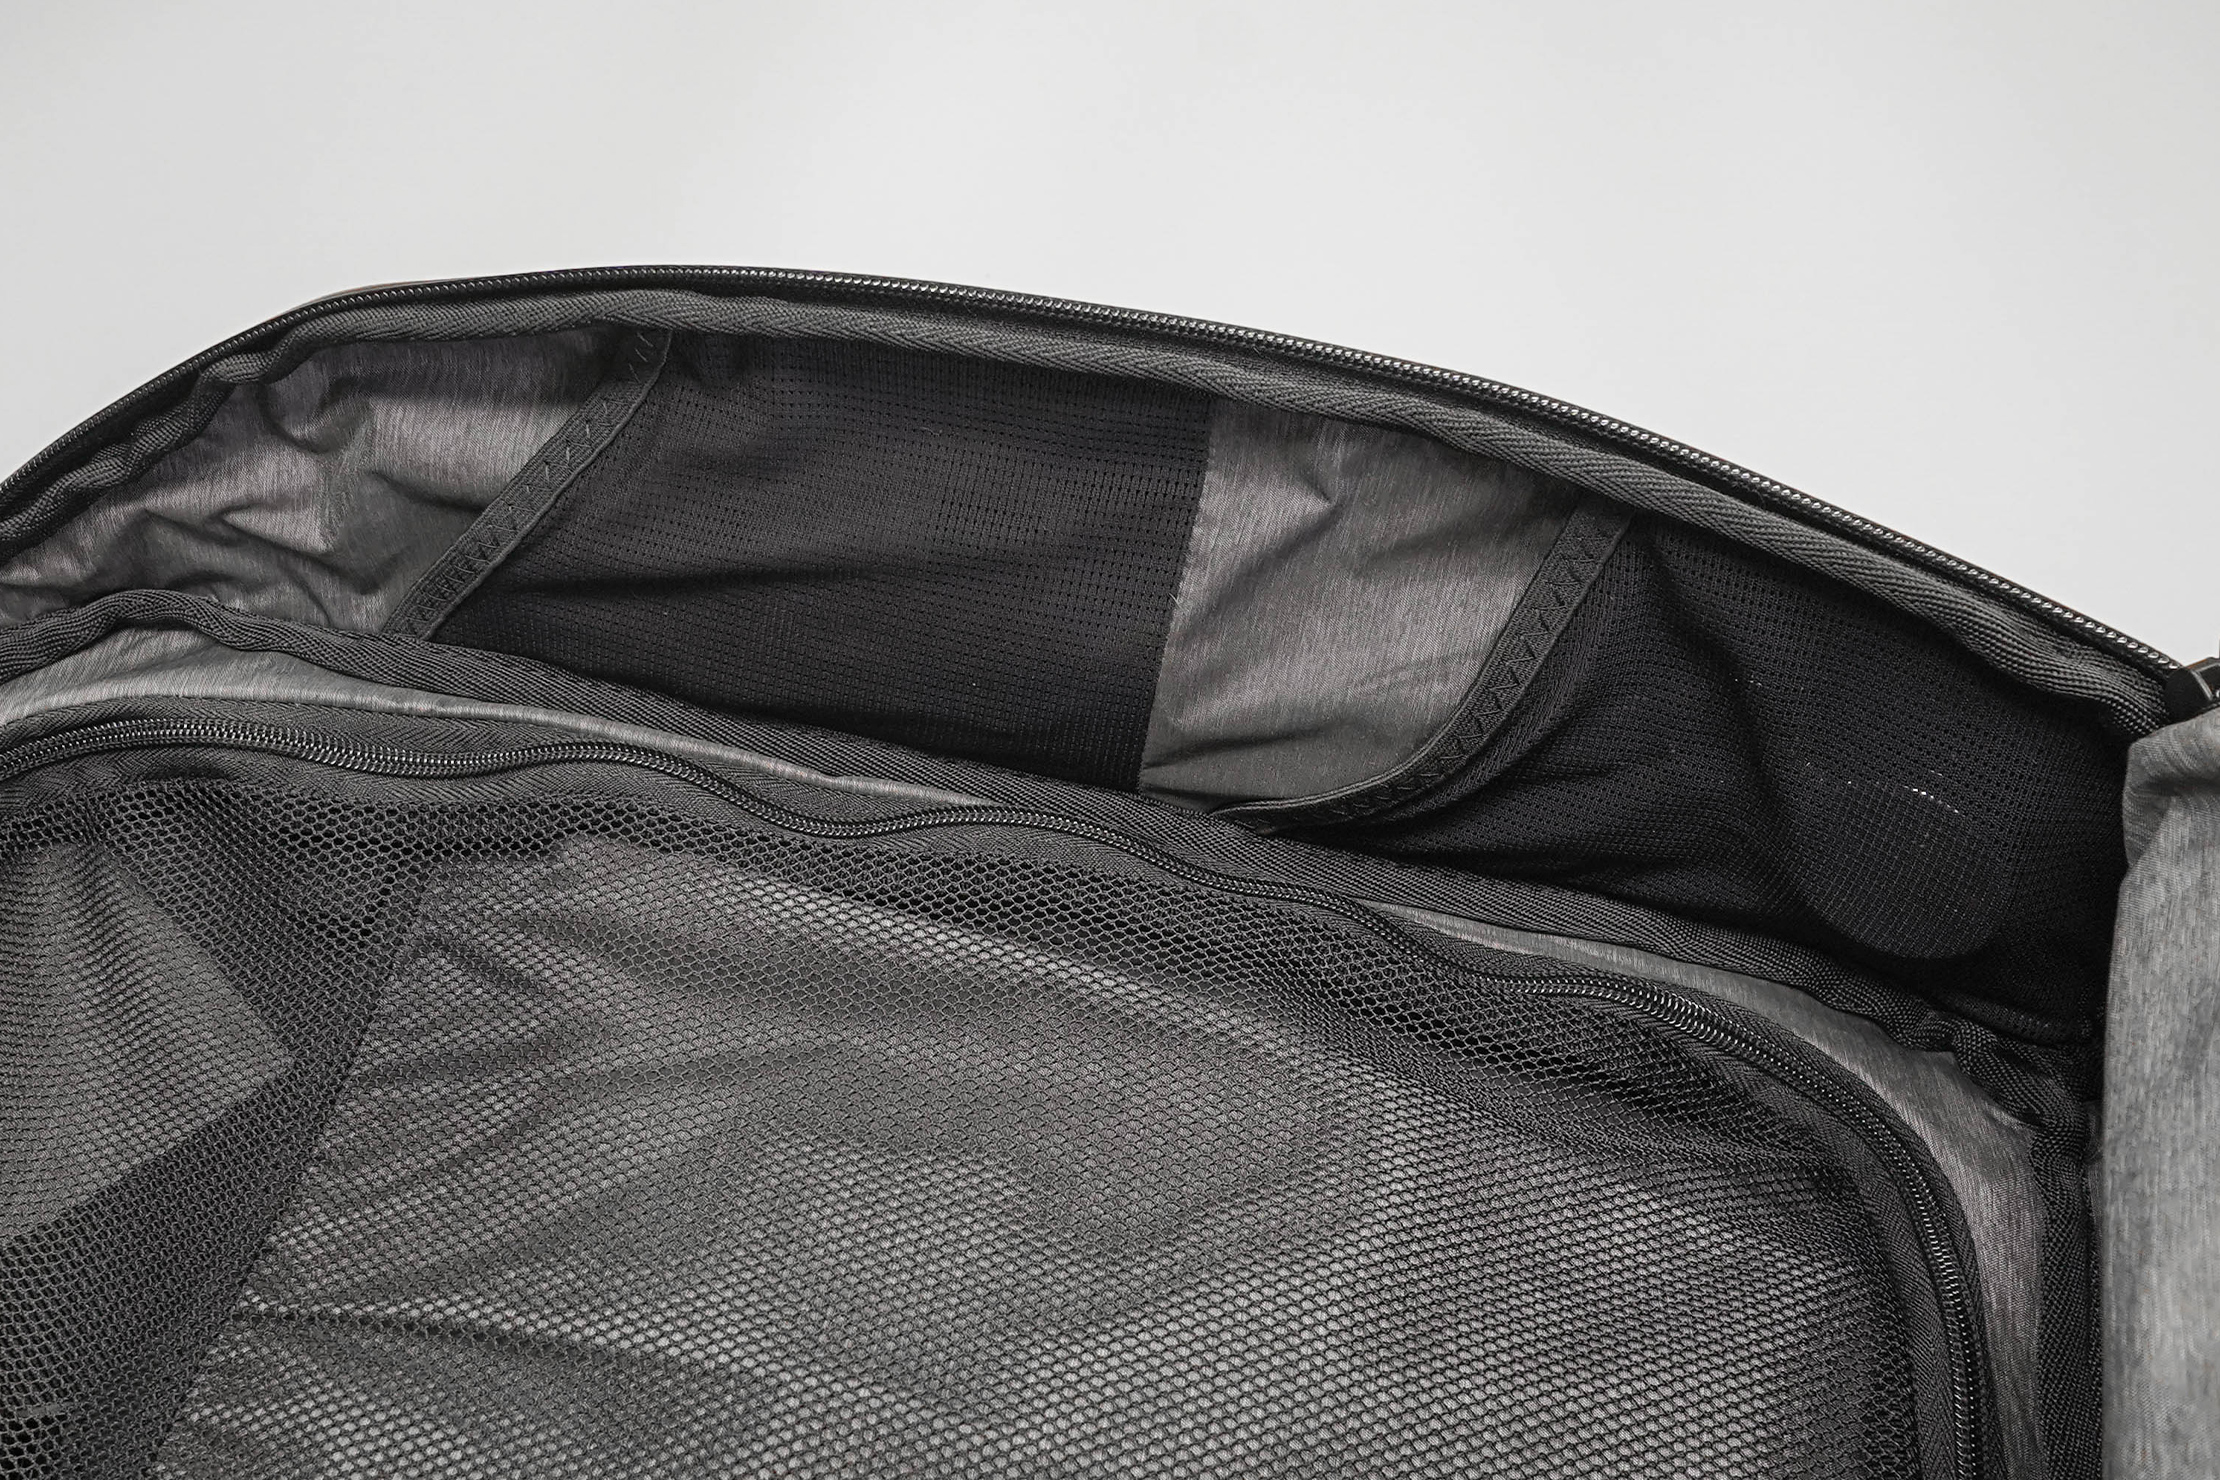 NOMATIC Travel Pack Mesh Pockets In The Main Compartment (Right Side)